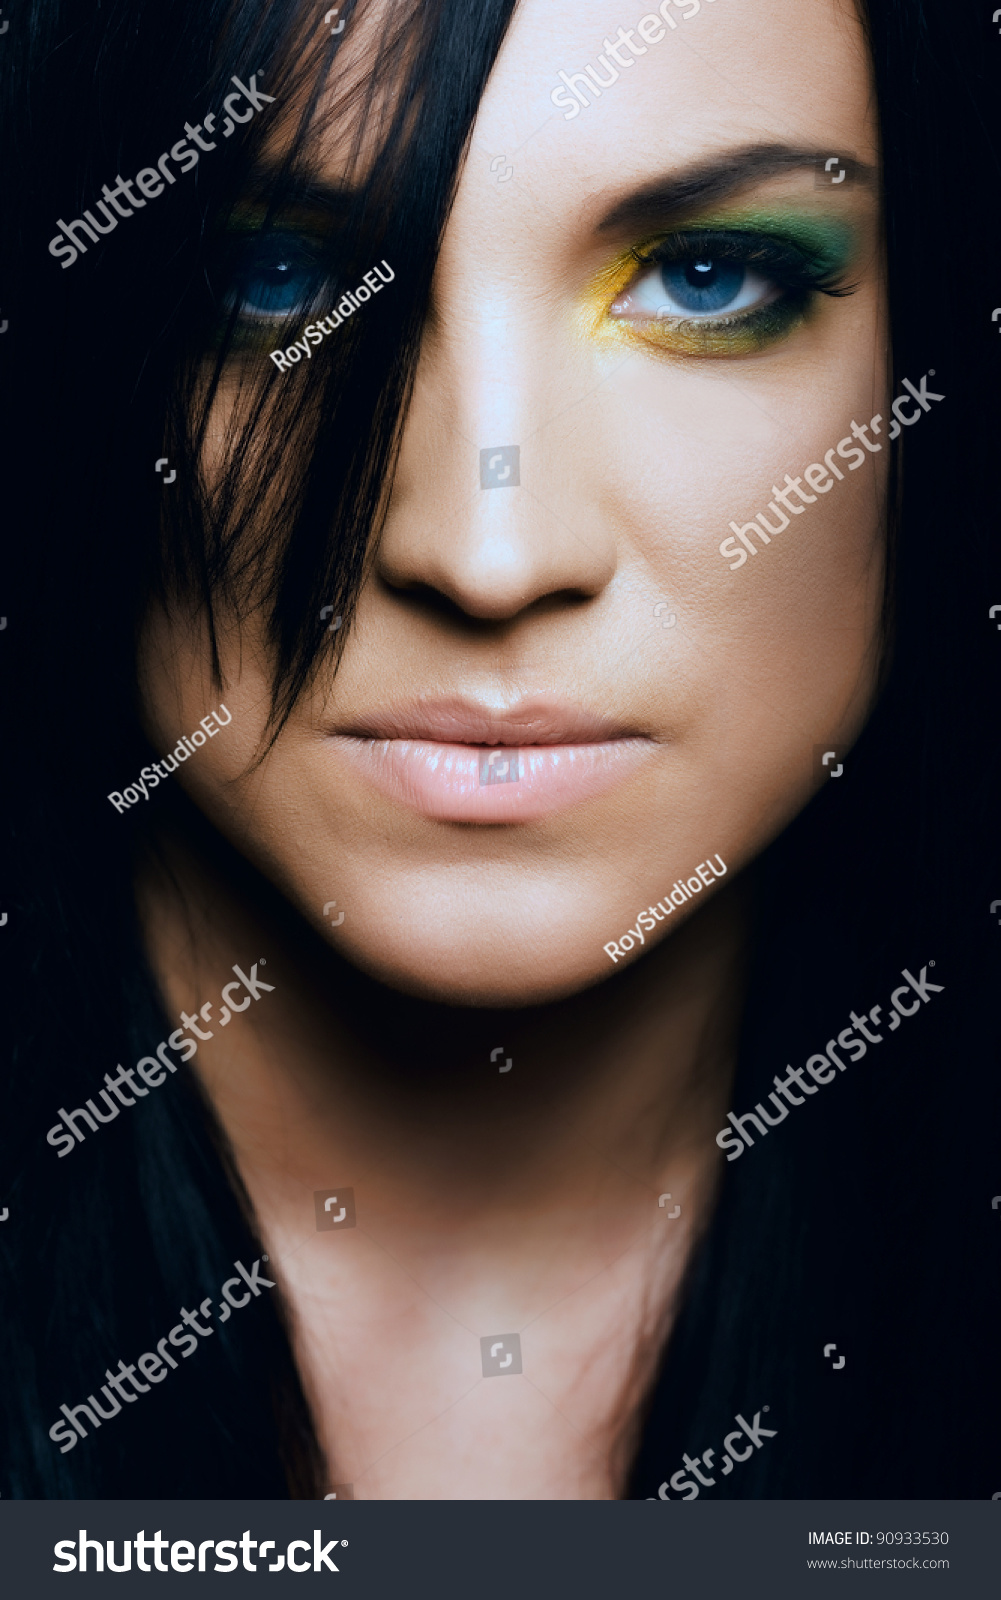 Beauty Dark Hair Woman Hypnotic Gaze Stock Photo Edit Now 90933530